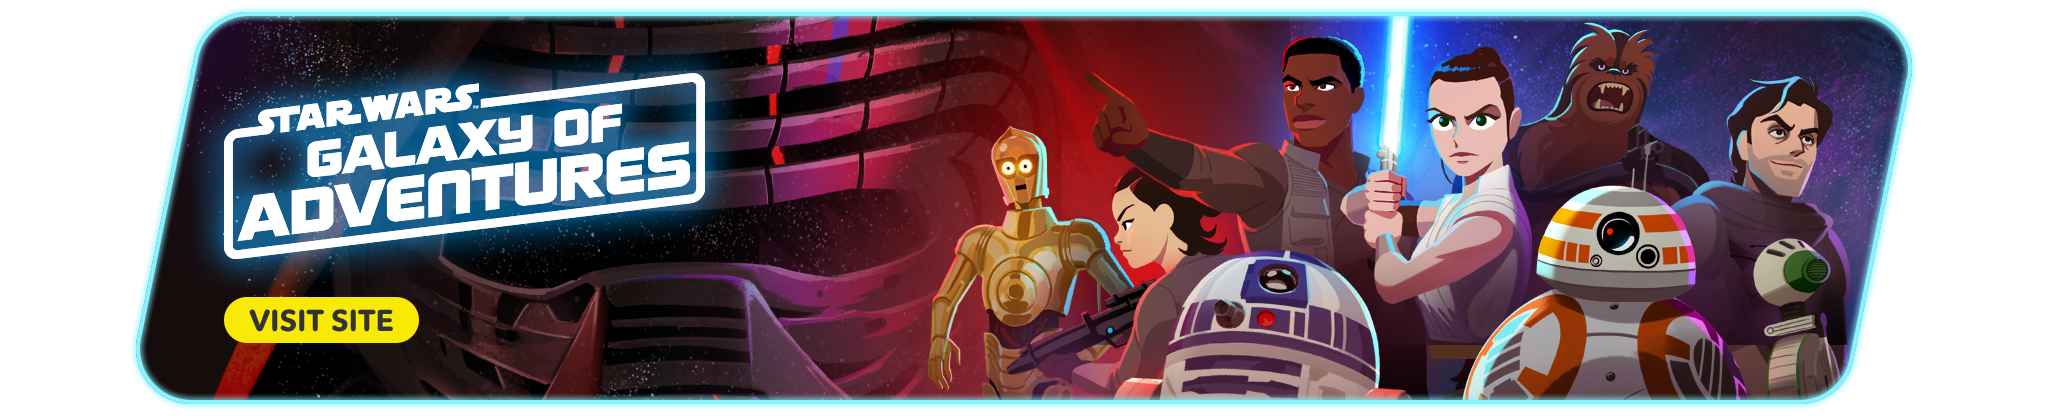 Star Wars Galaxy of Adventures. Visit site.